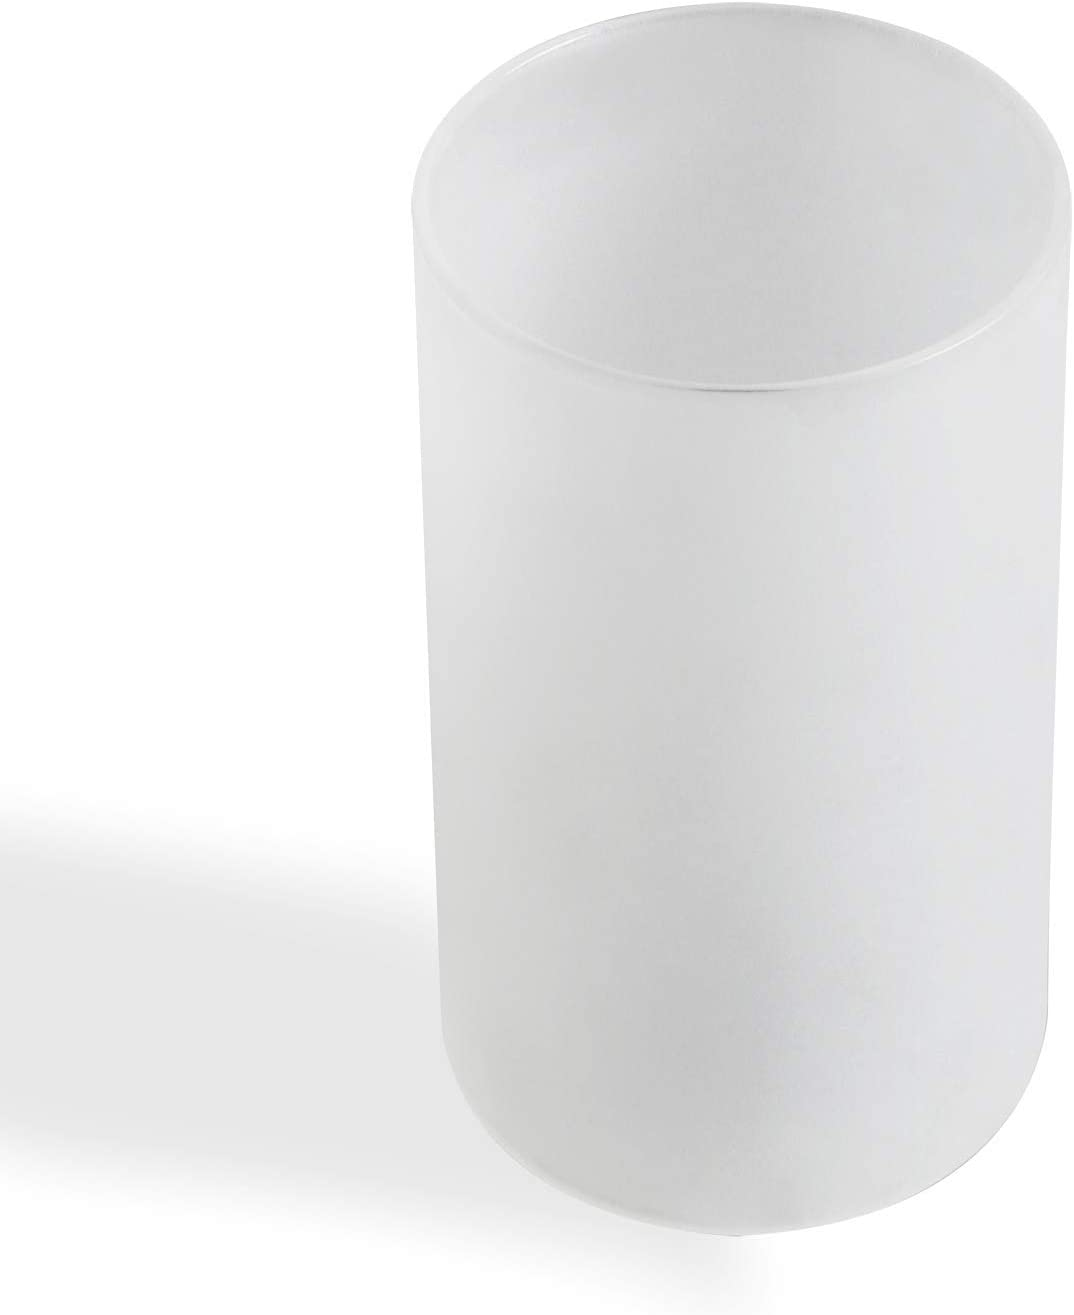 Eumyviv White Frosted Glass Lamp Shade, Accessory Glass Fixture Replacement Globe or Lampshade with 1-5/8-Inch Fitter(A00013)